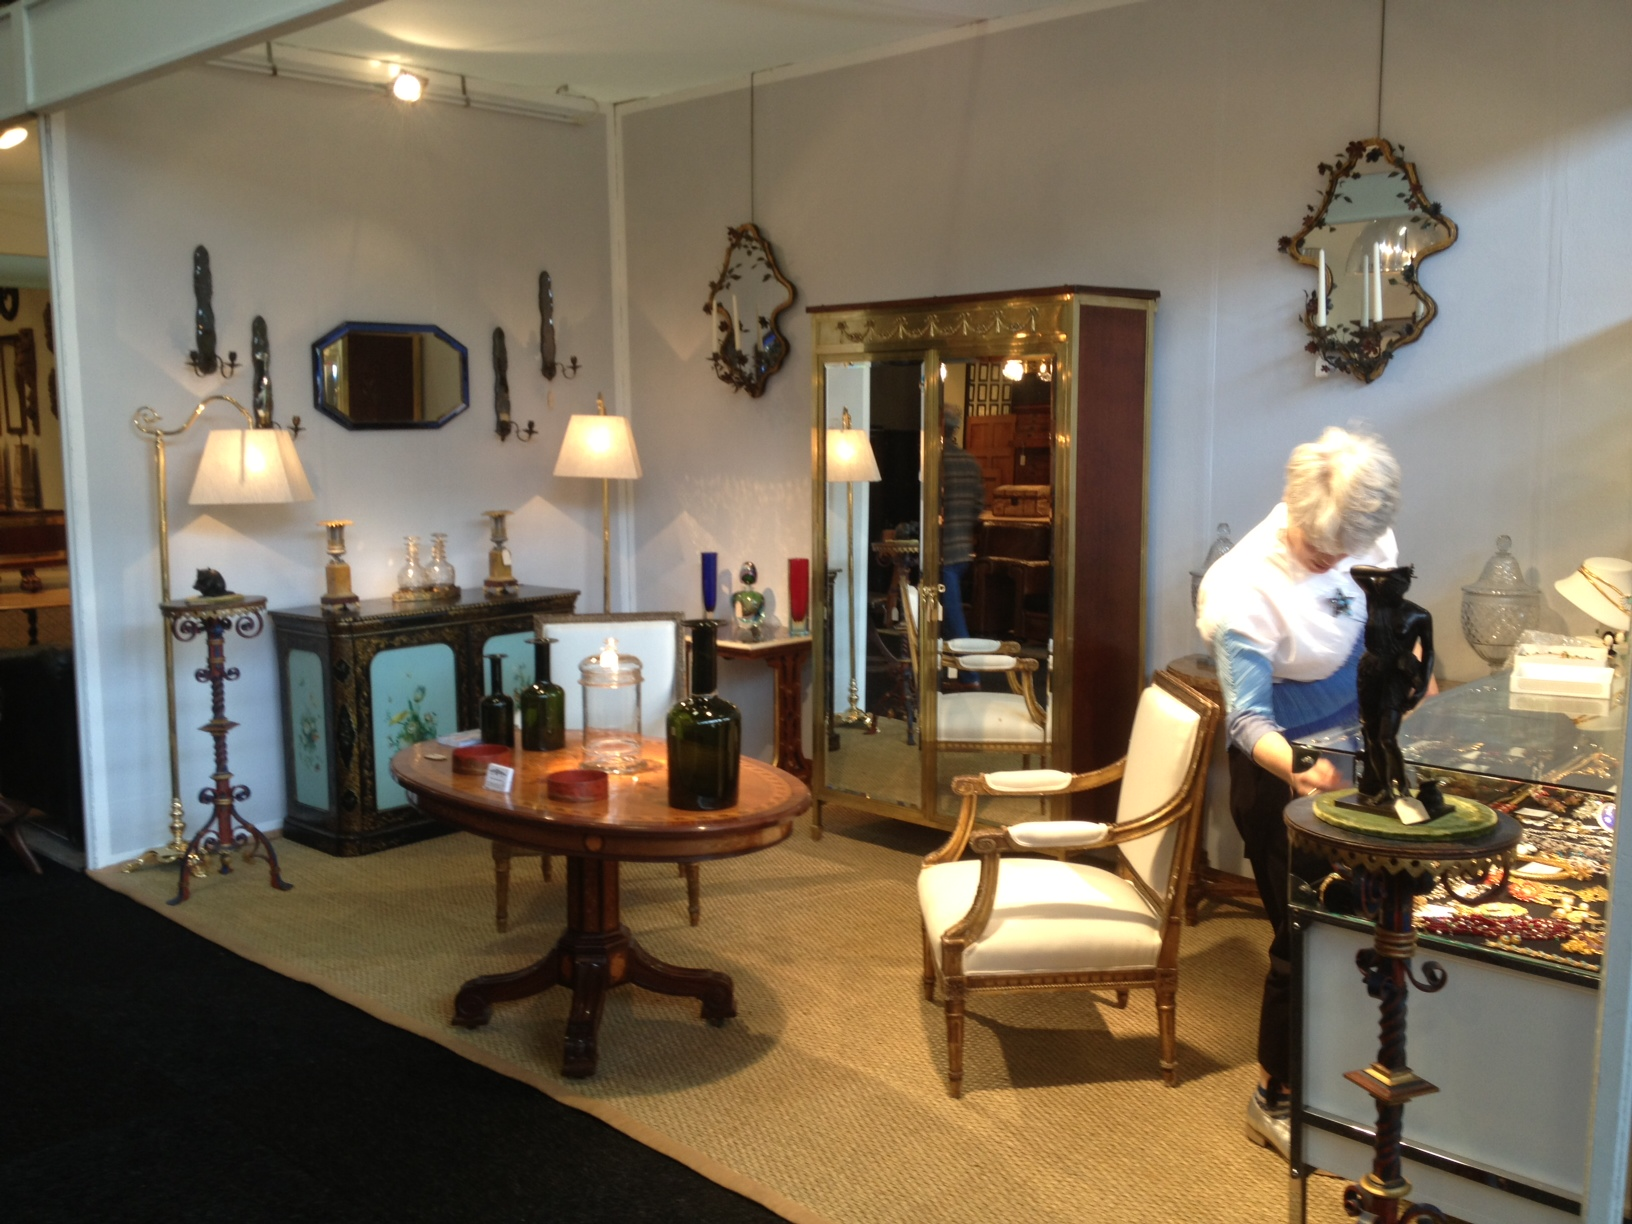 a stand at the decorative fair Battersea Park